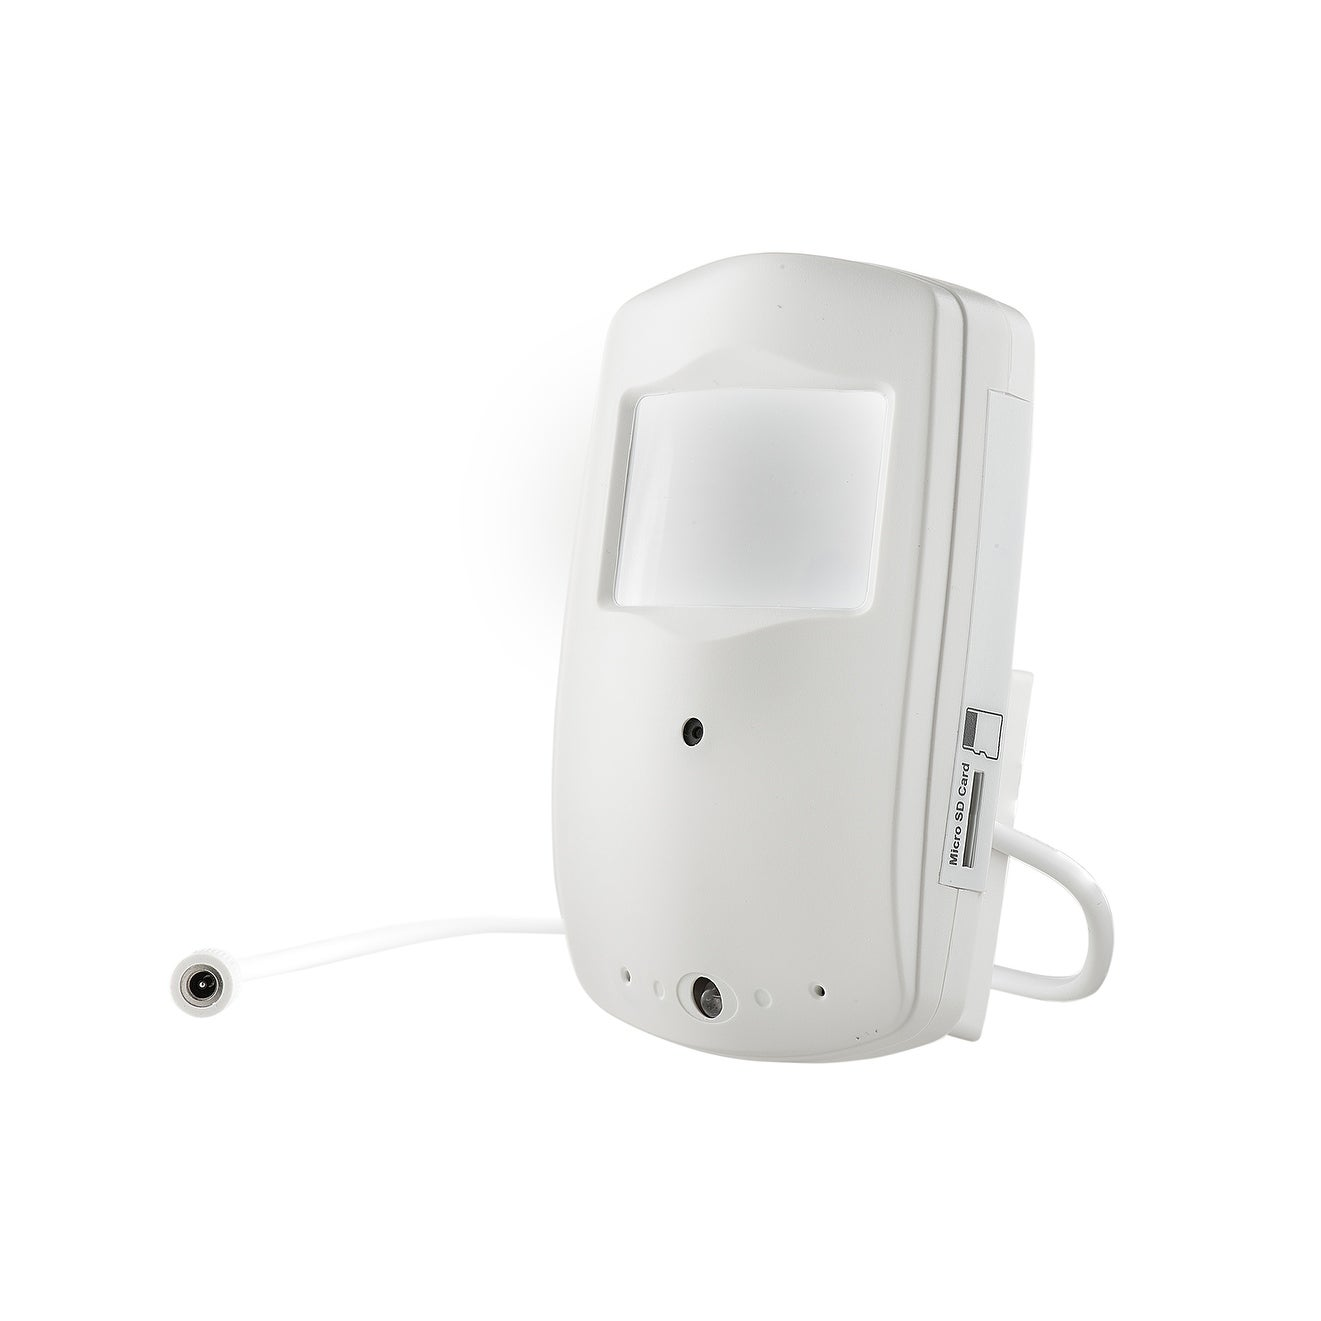 Spytec 720p Hd Wi Fi Ip Motion Sensor Camera W Pir Activated Mode